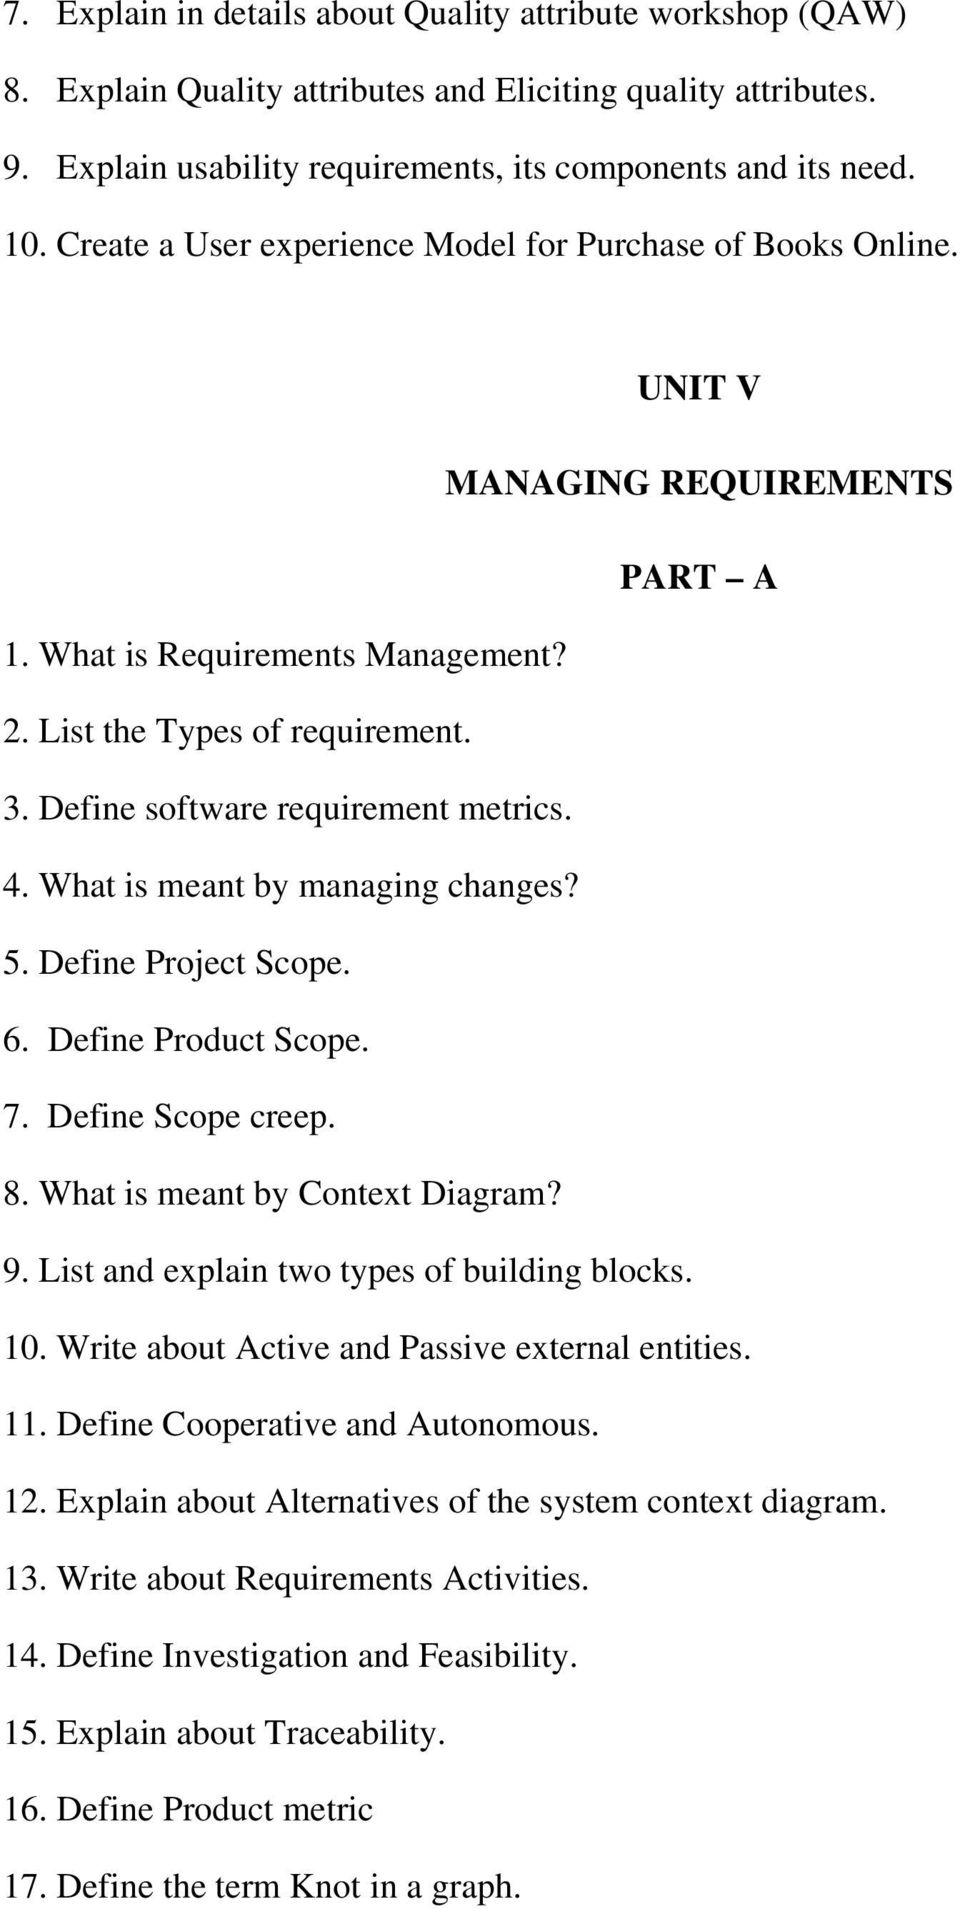 Define software requirement metrics. 4. What is meant by managing changes? 5. Define Project Scope. 6. Define Product Scope. 7. Define Scope creep. 8. What is meant by Context Diagram? 9.